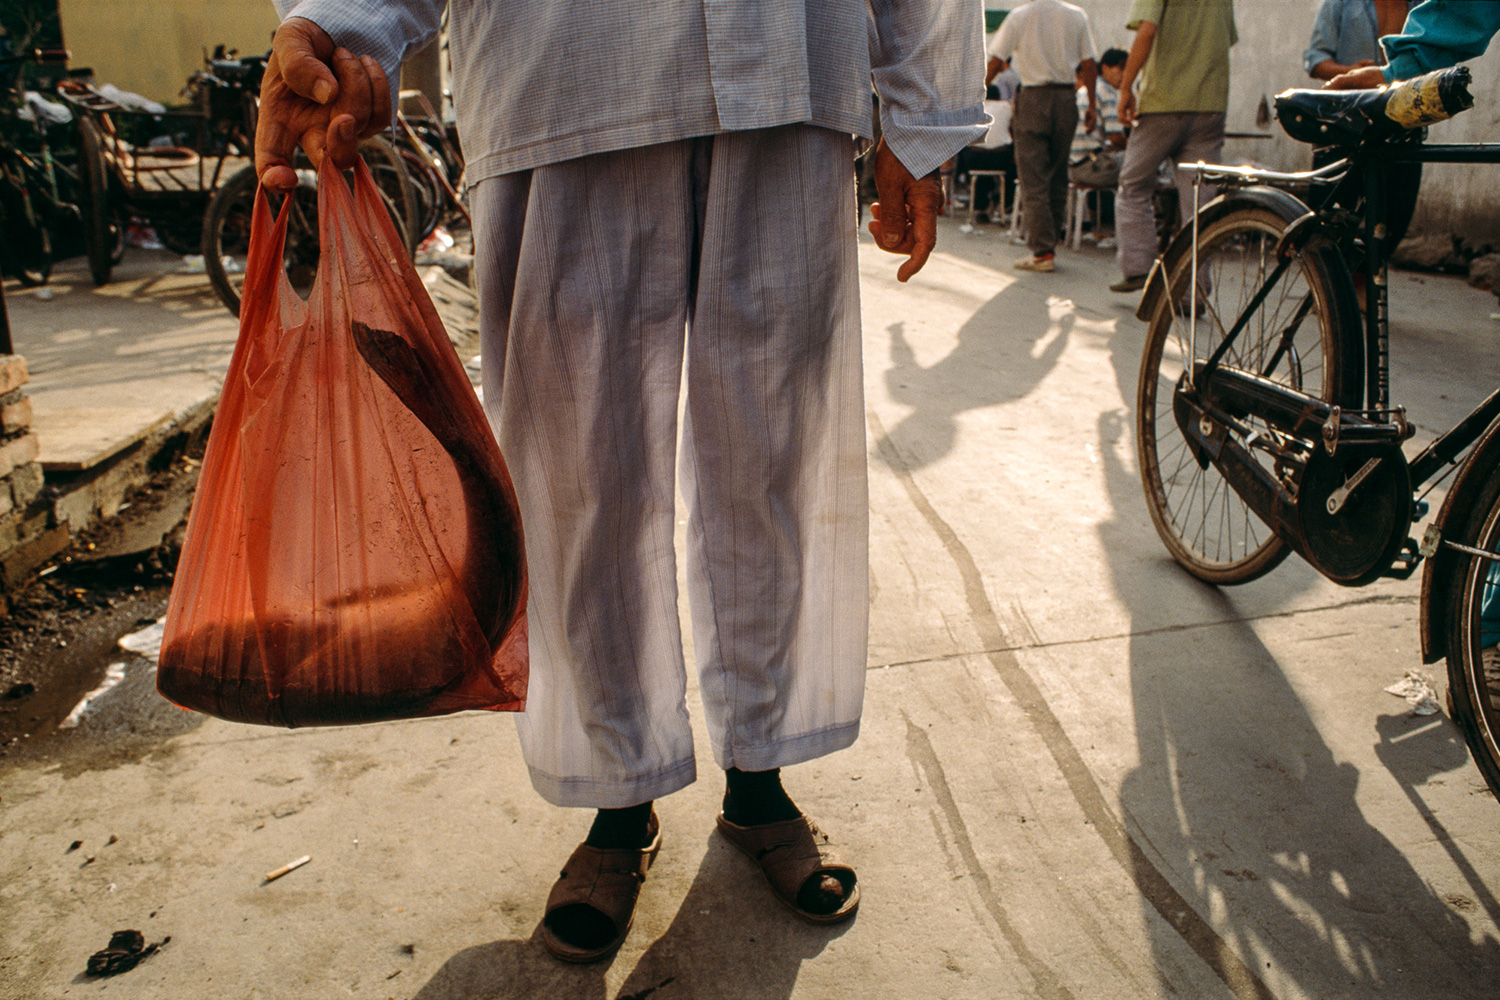 Dressed in his pajamas, a man leaves an open air market in Lujiazui with a fresh fish, 1997.